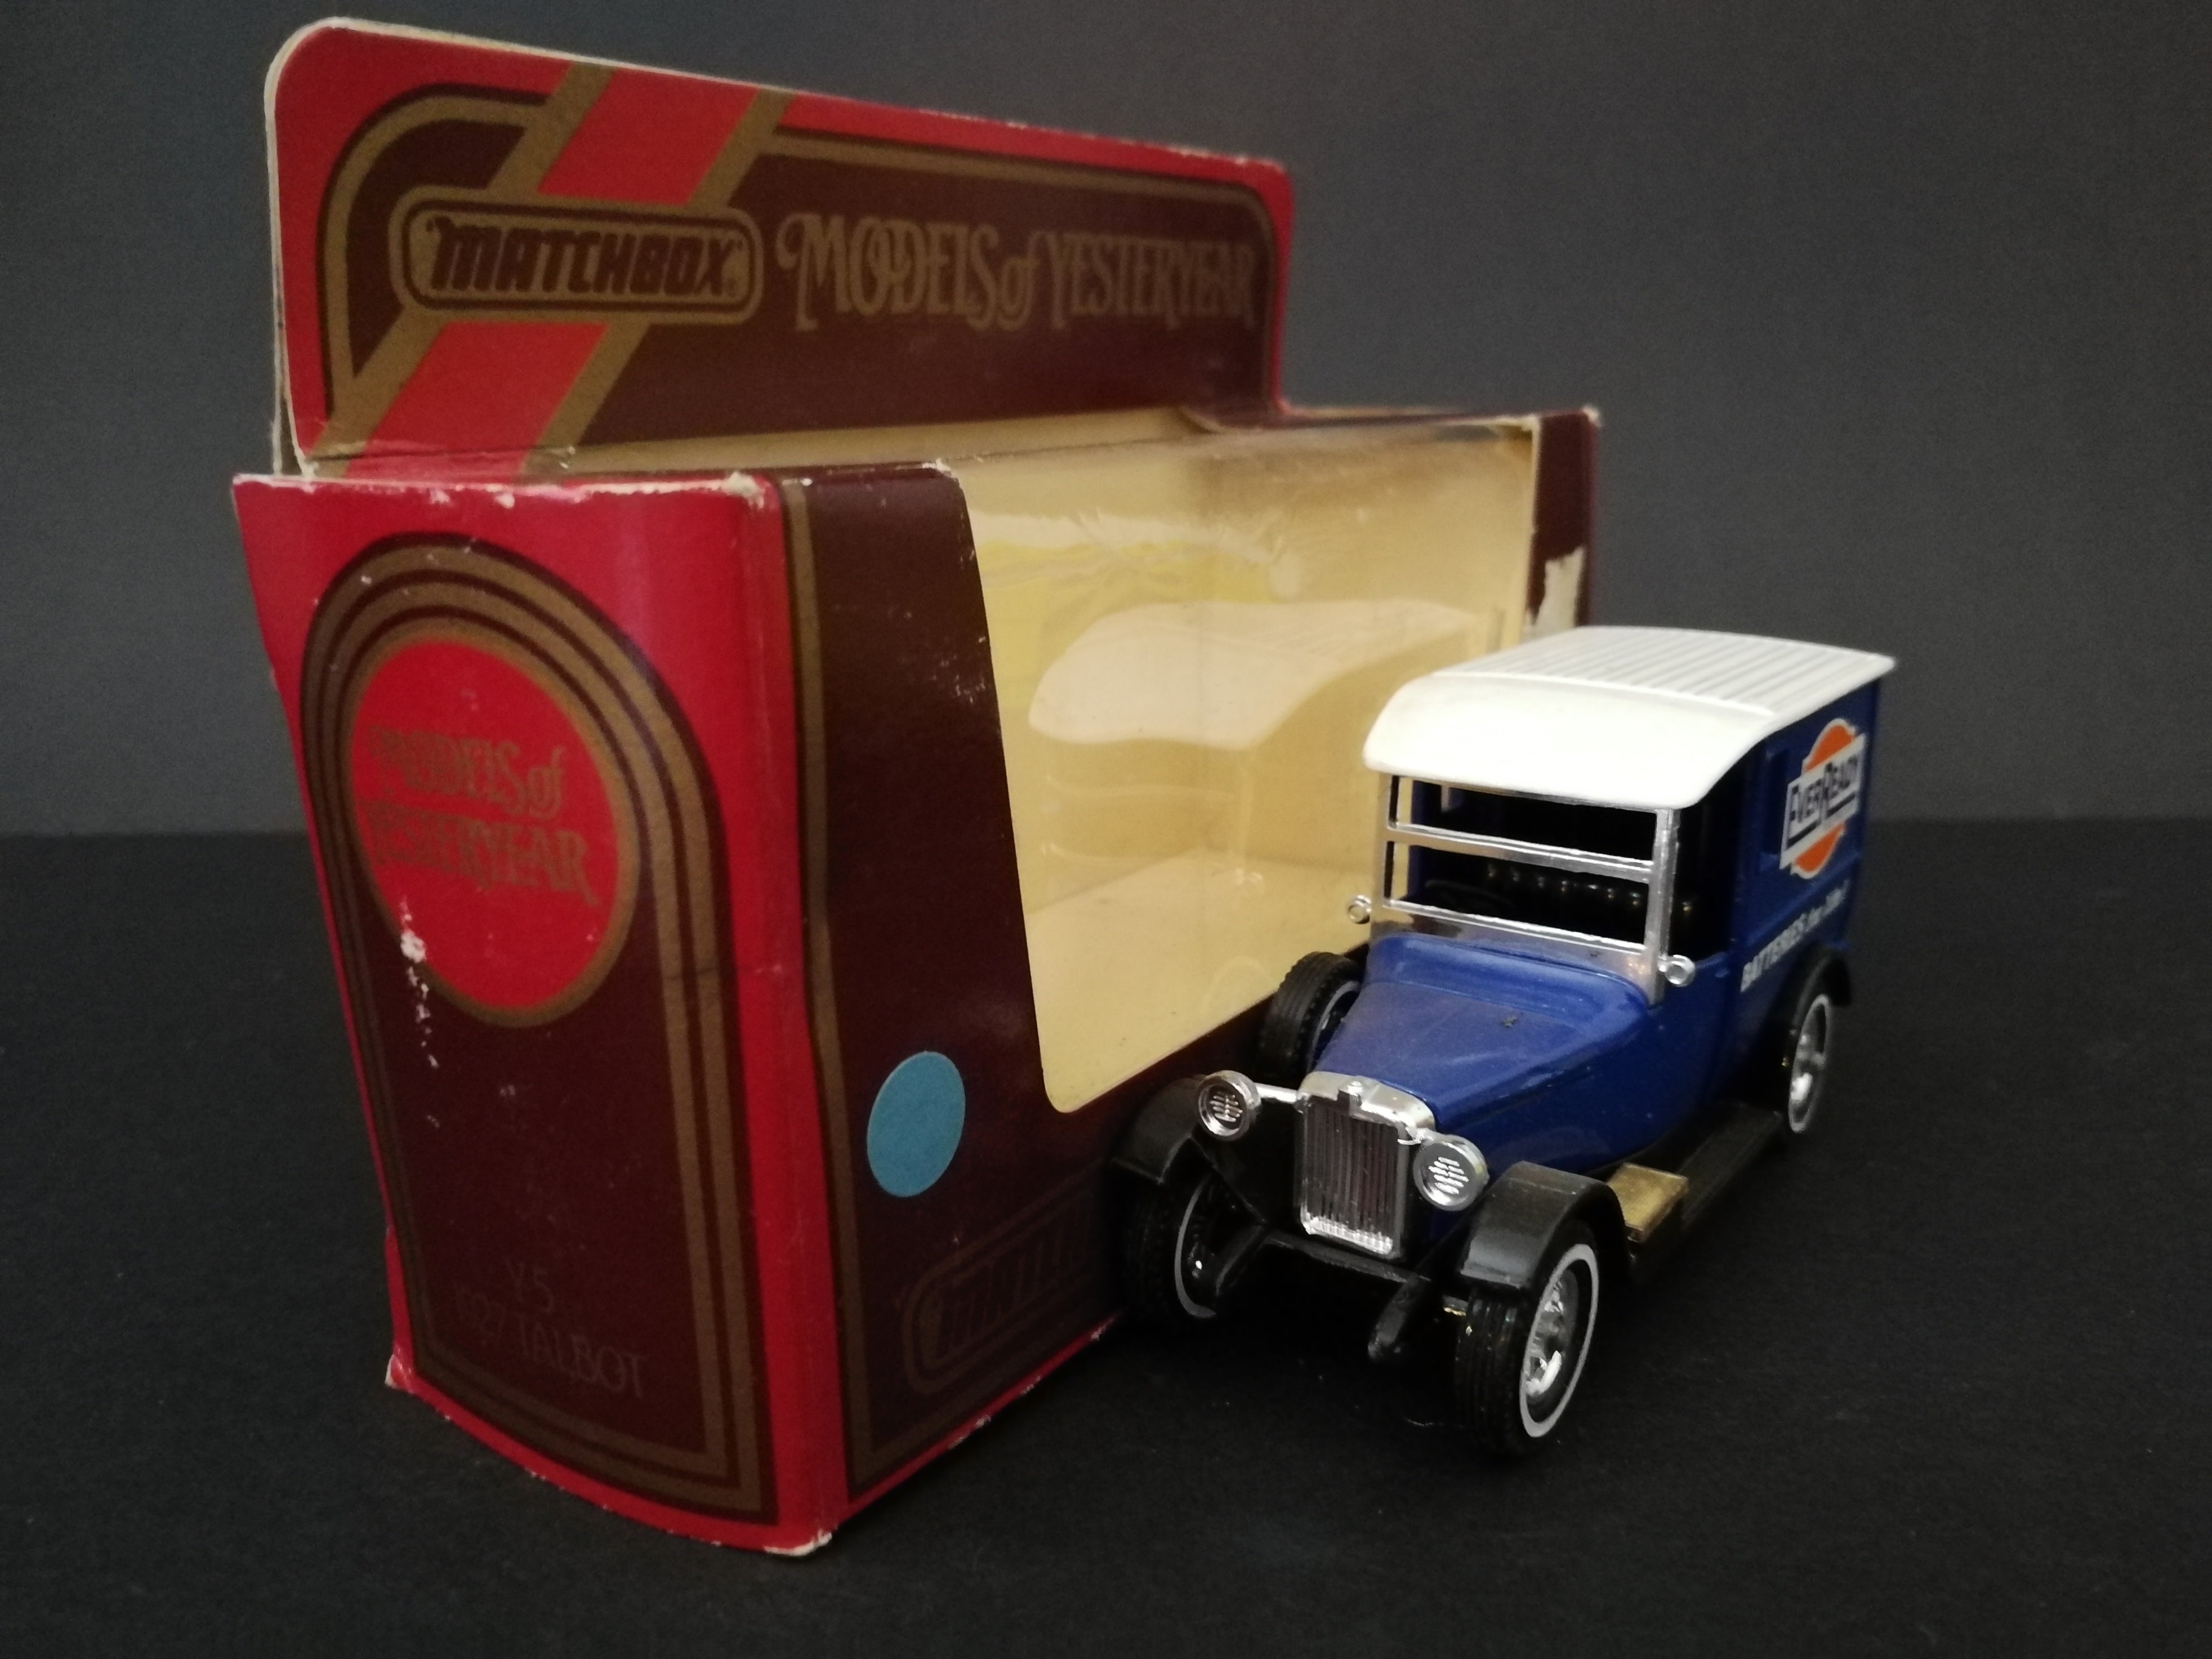 Matchbox Models of Yesteryear - Y-5 1927 Talbot, comes with box, color dark blue, side view of box